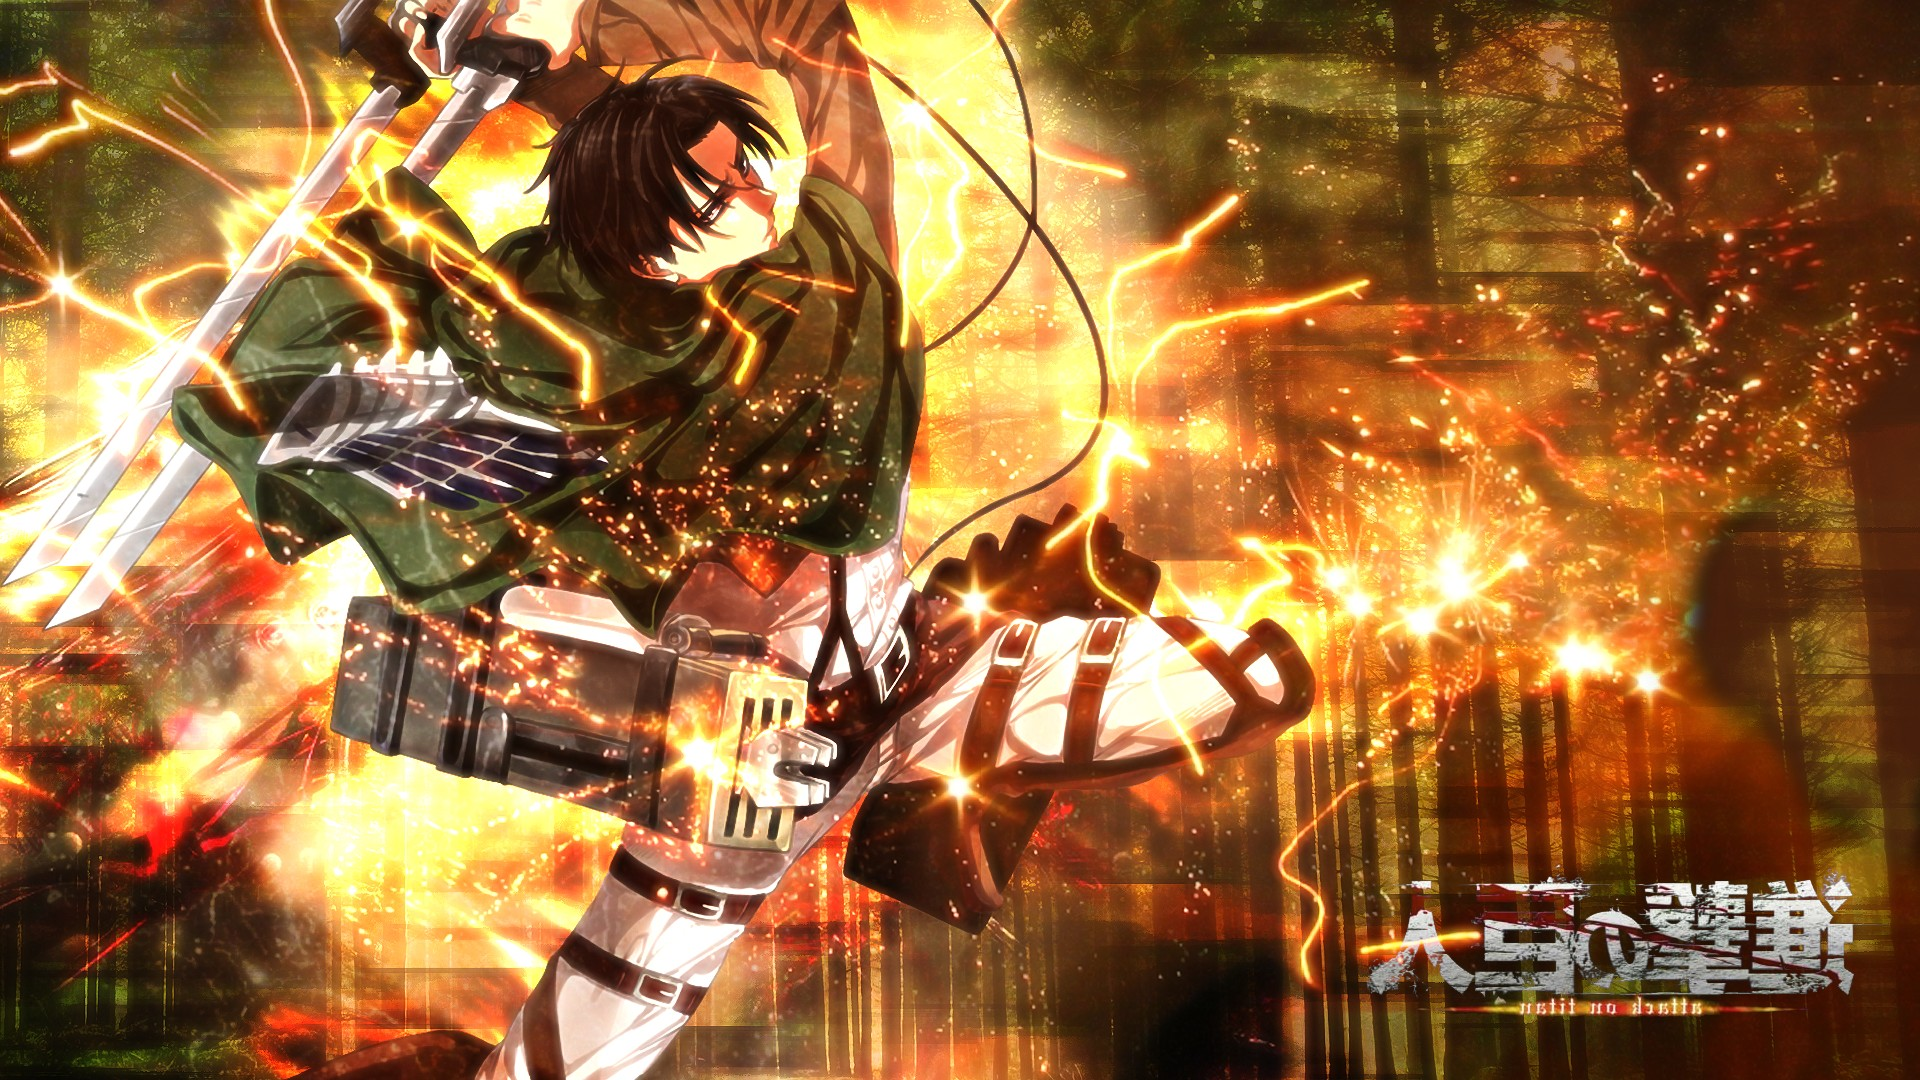 Attack On Titan Desktop Wallpaper Shingeki No Kyojin Wallpaper Levi 1920x1080 Wallpaper Teahub Io